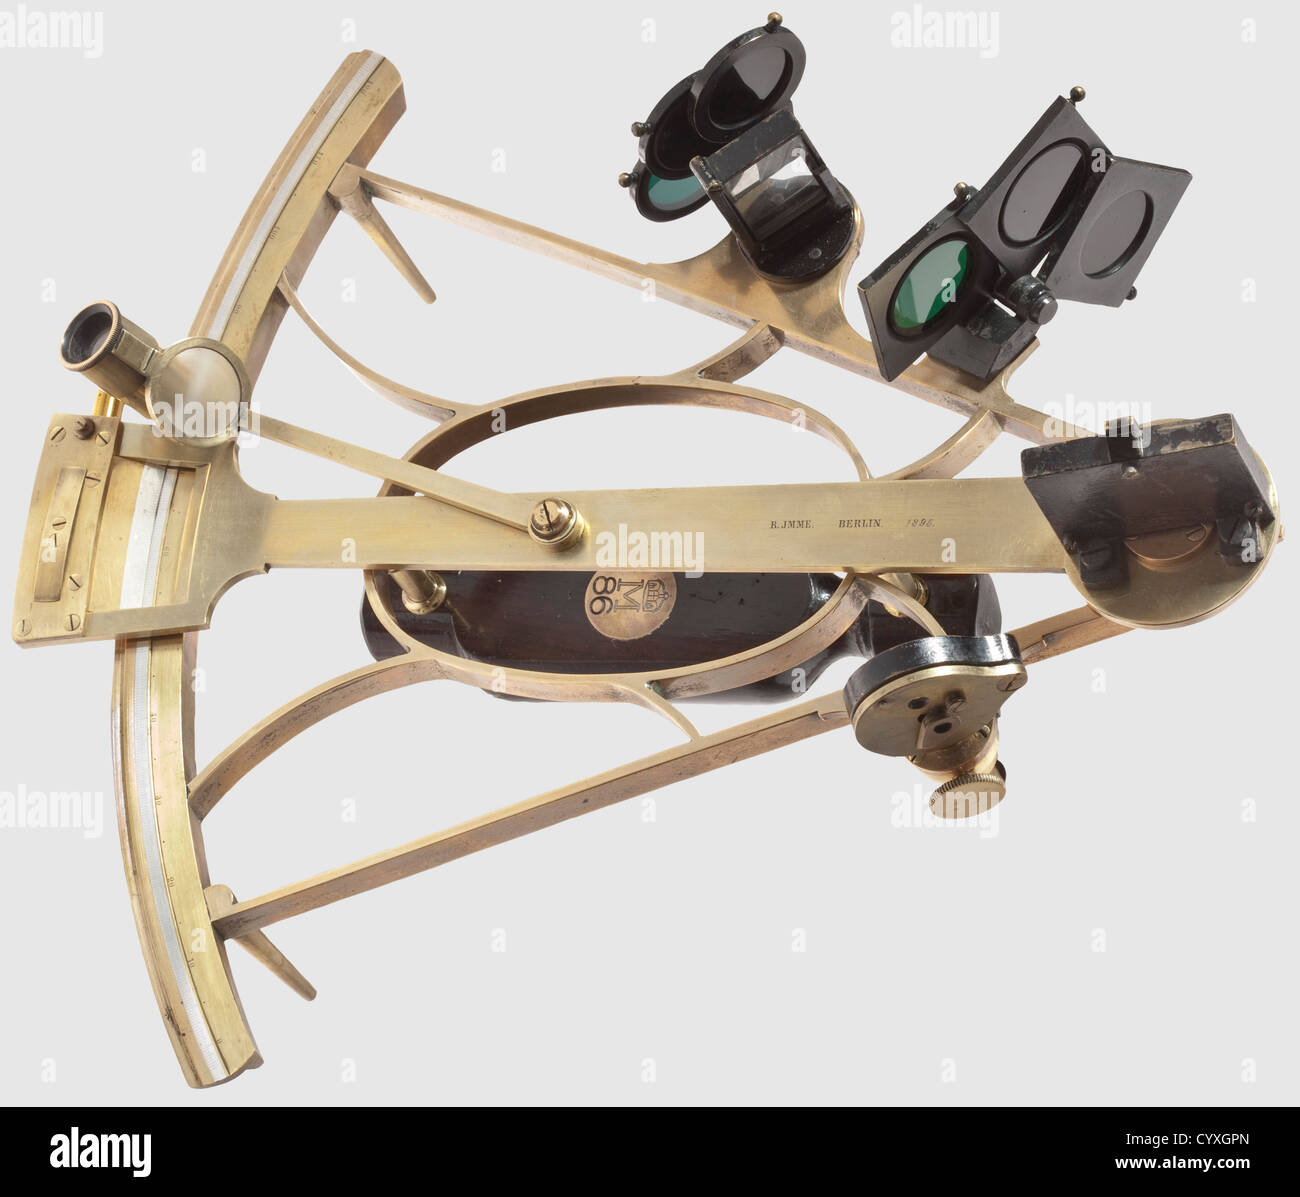 A sextant, of the Prussian royal navy Early precision instrument made of solid polished brass with swivelling mirror, - Stock Image